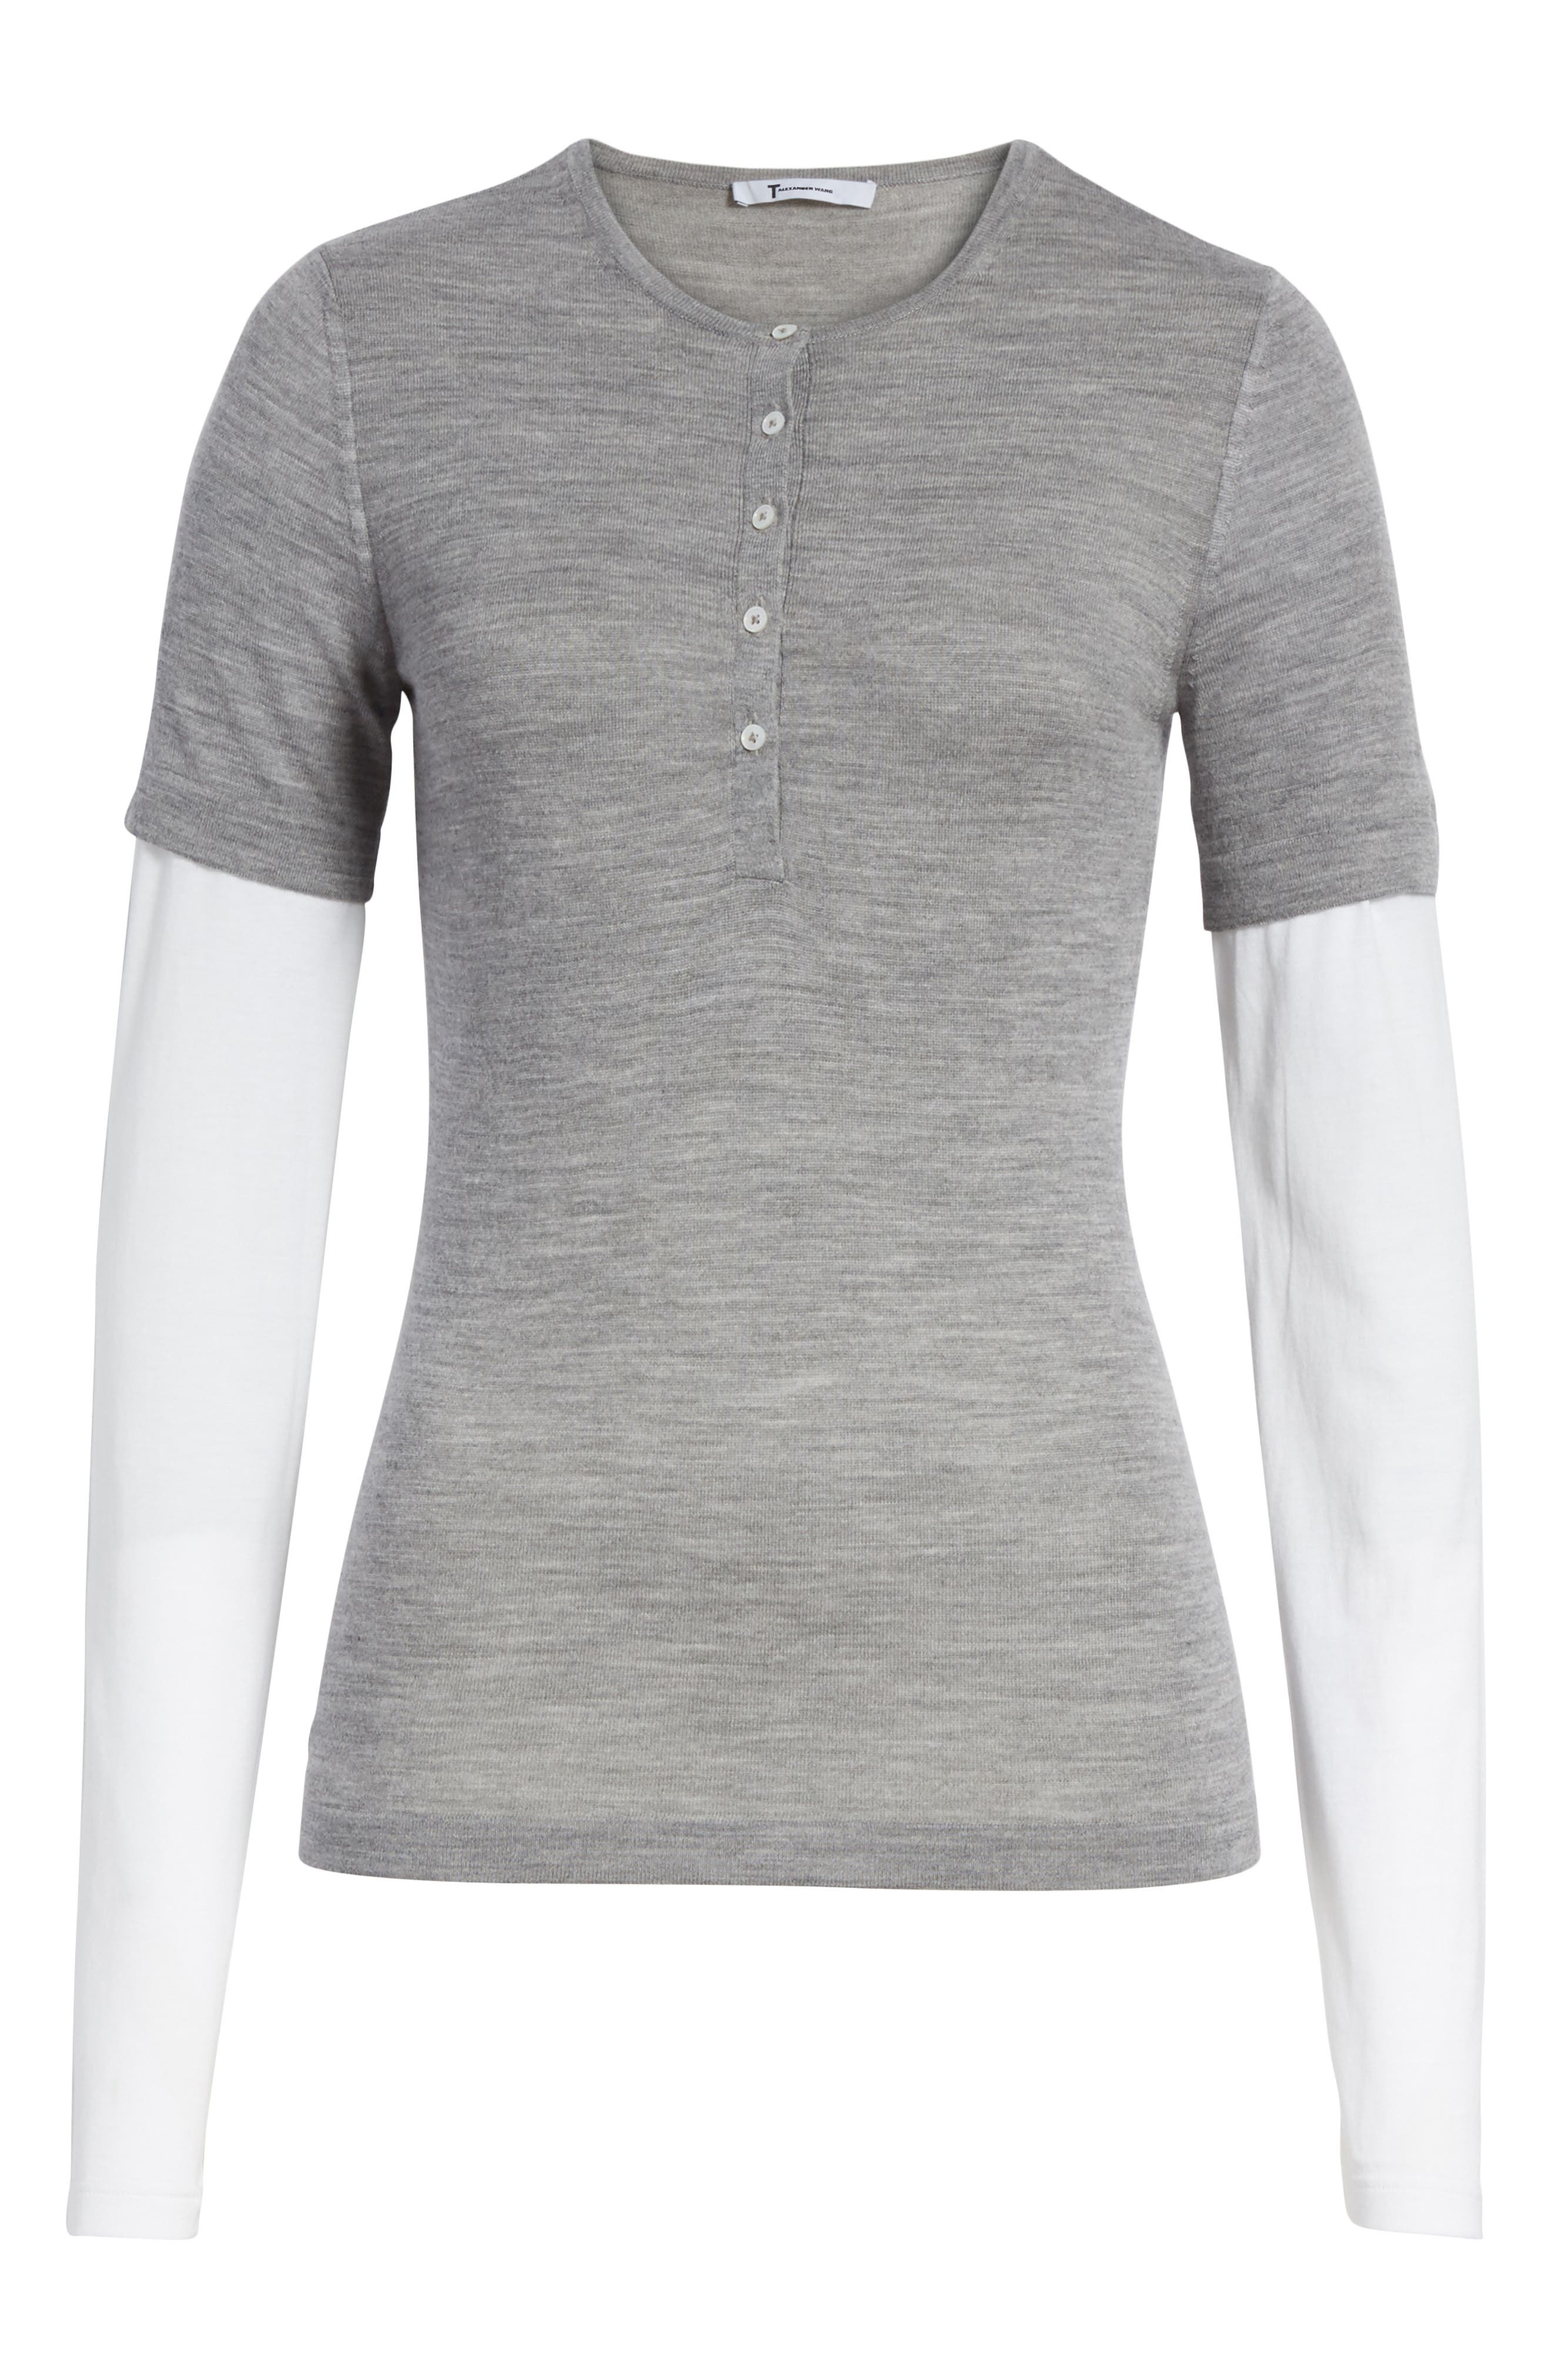 Knit Merino Wool Layered Top,                             Alternate thumbnail 6, color,                             Heather Grey/ White